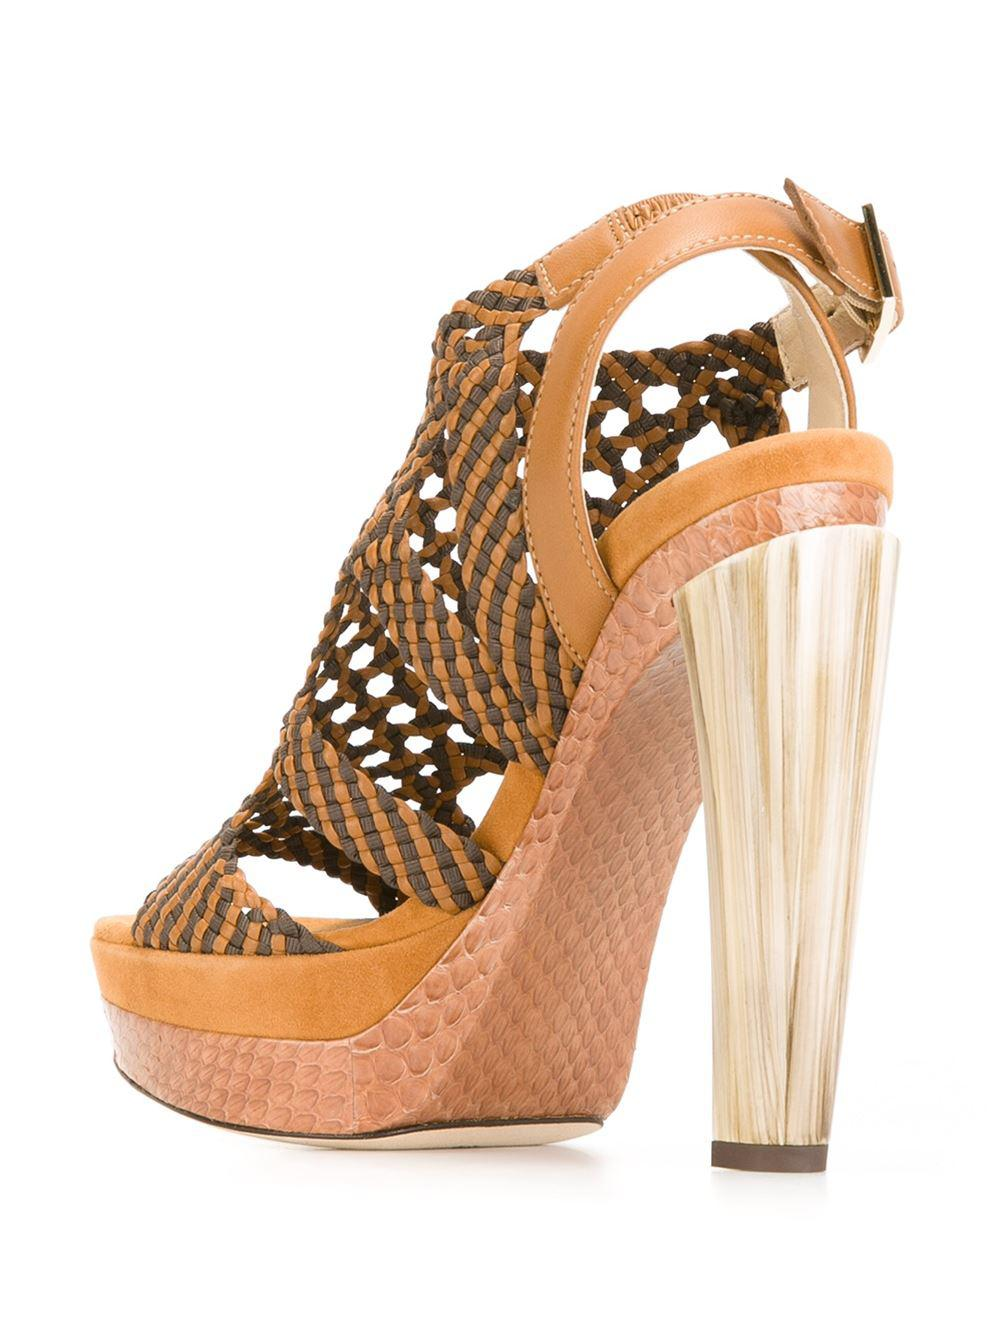 Jimmy Choo 'Taytum 130' sandals - Nude & Neutrals farfetch